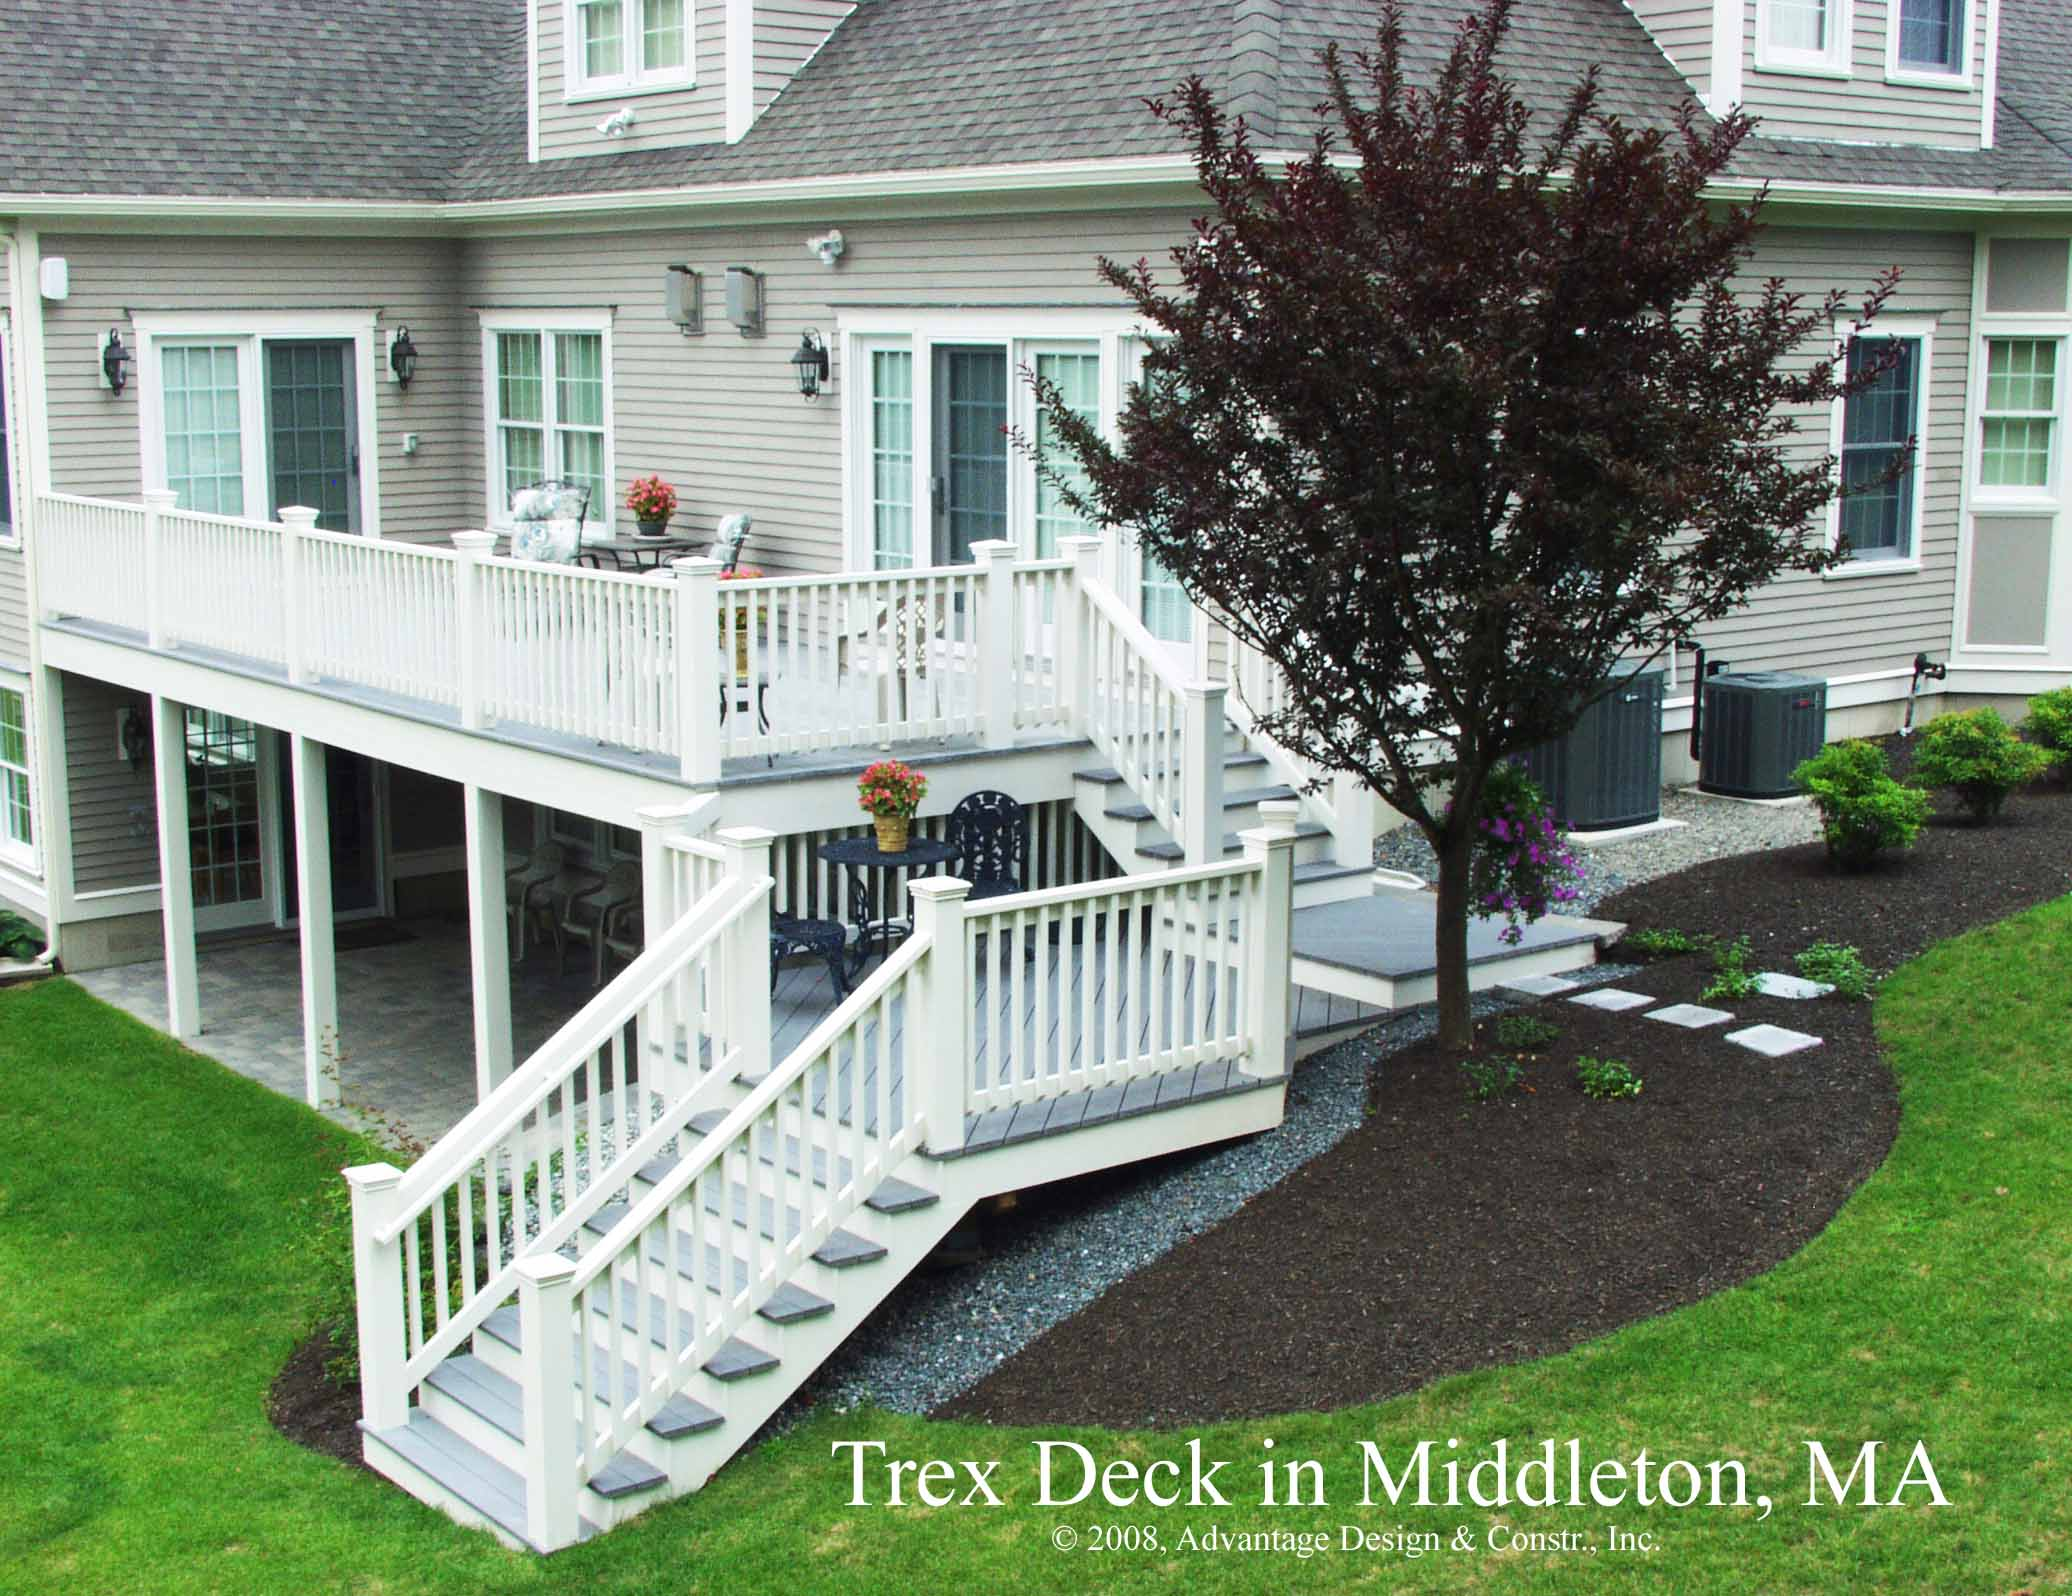 Archadeck of suburban boston burlington ma 01803 for Two story deck